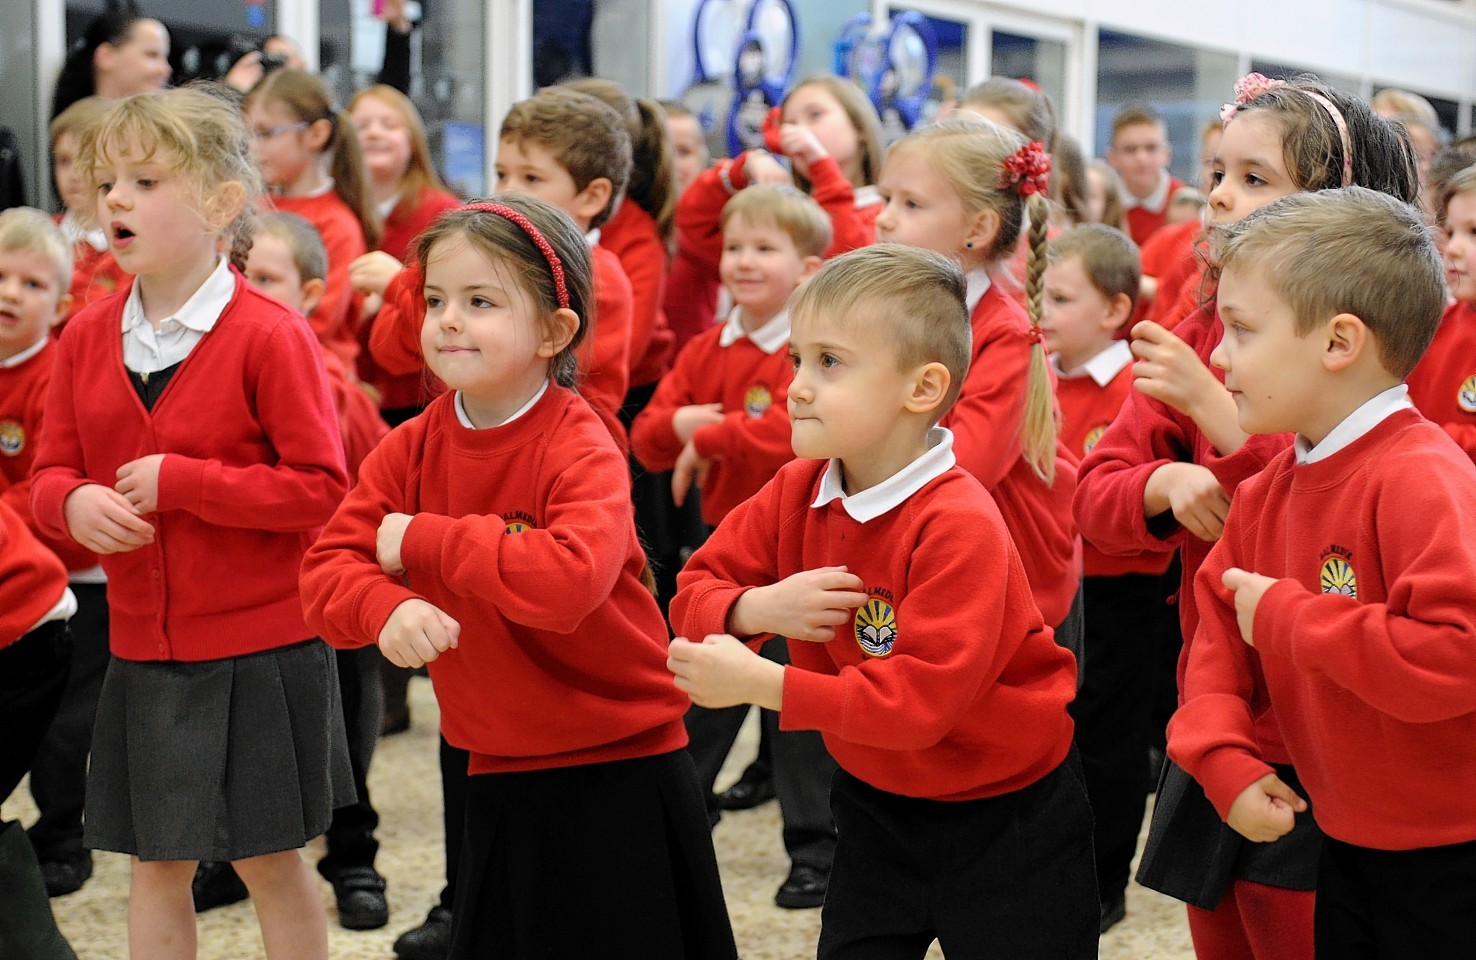 Pupils from Balmedie Primary School flash dancing for Red nose day